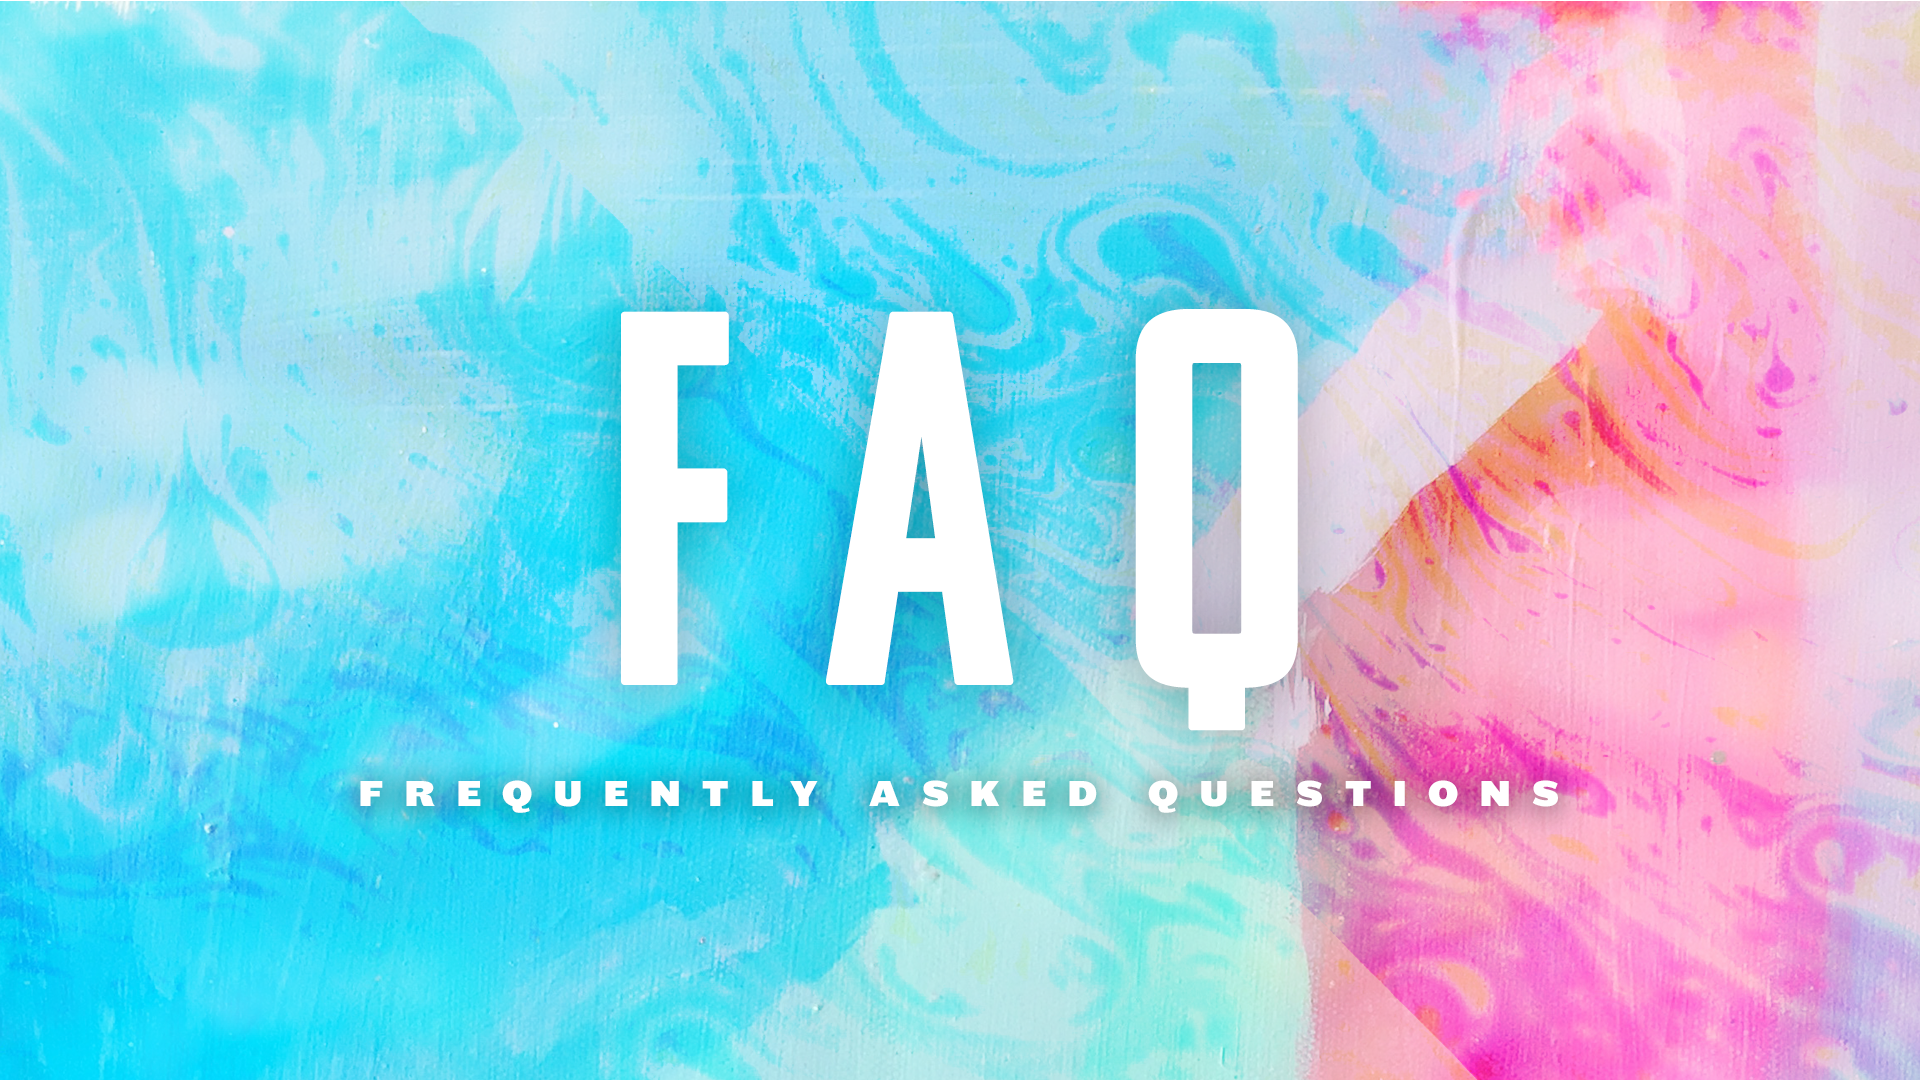 Submit your FAQ - We are kicking off a series to answer the pressing questions about life. Submit your question below to be considered for the next sermon topic.